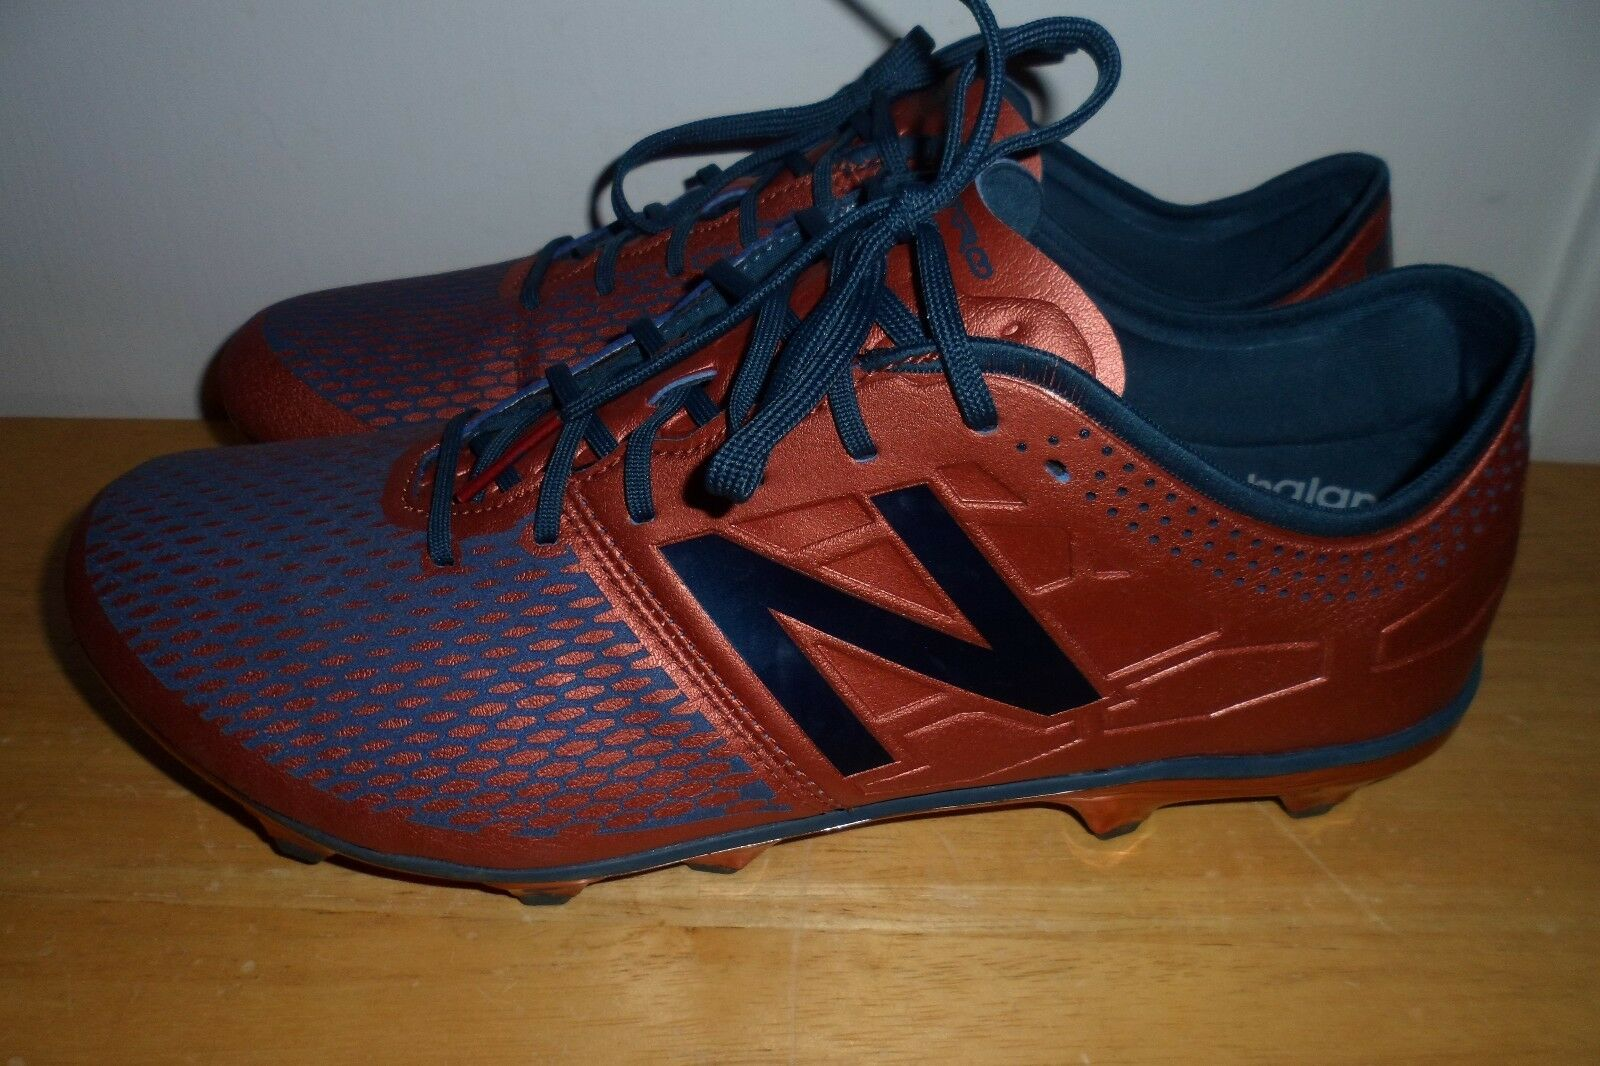 MUST SEE NWOT  224.99 New Balance Men's MSVLFCN2 Copper with North Sea 9 2E